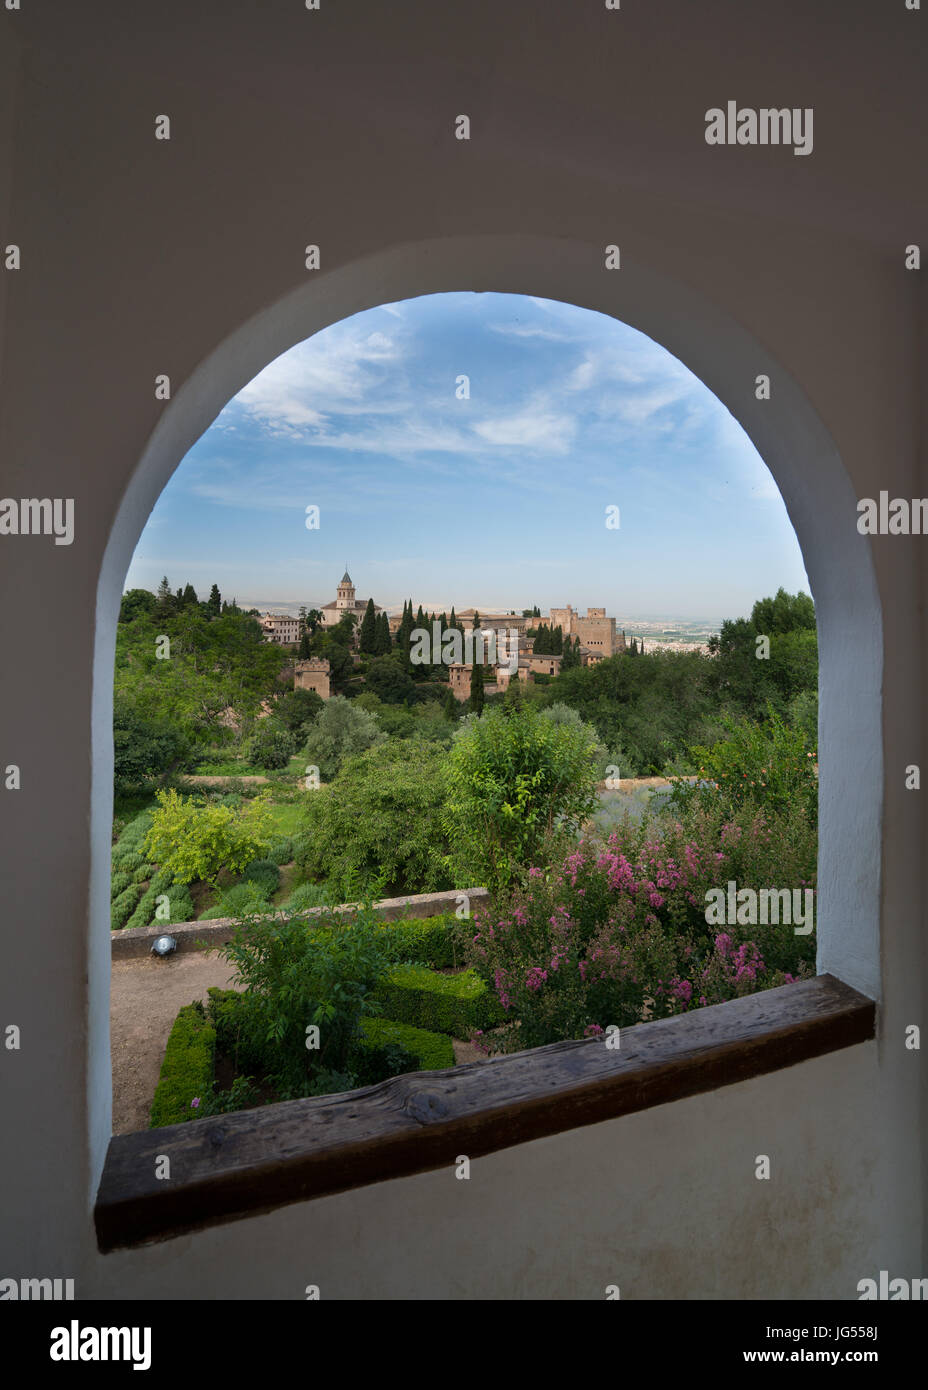 View throuh an arched window of Granada and the Alhambra Palace and fortress located in, Granada, Andalusia, Spain. Stock Photo